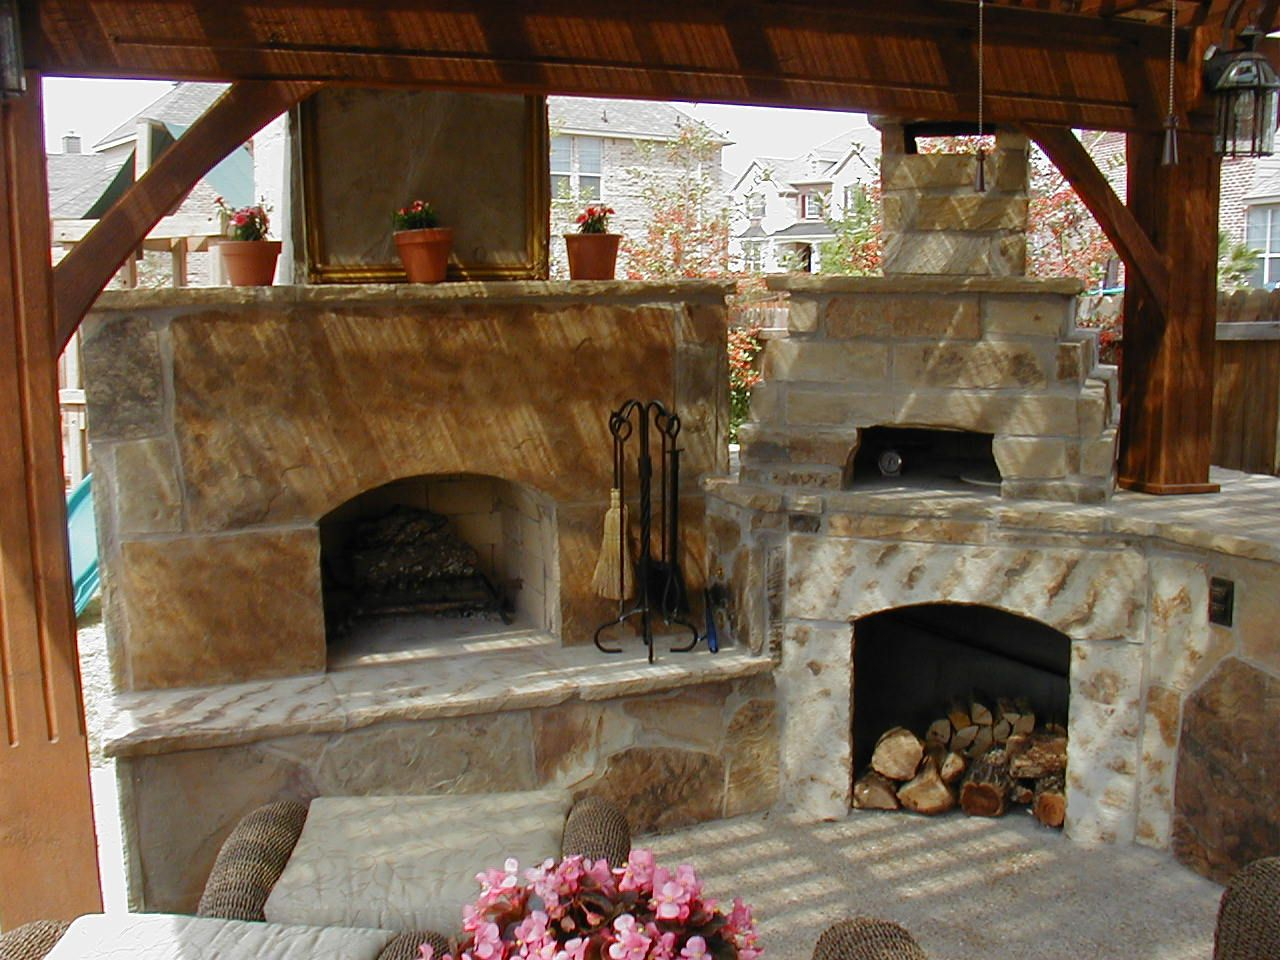 Rock Walkway Leading Up To The Perfect Outdoor Fireplace, Pizza Oven And  Kitchen Under A